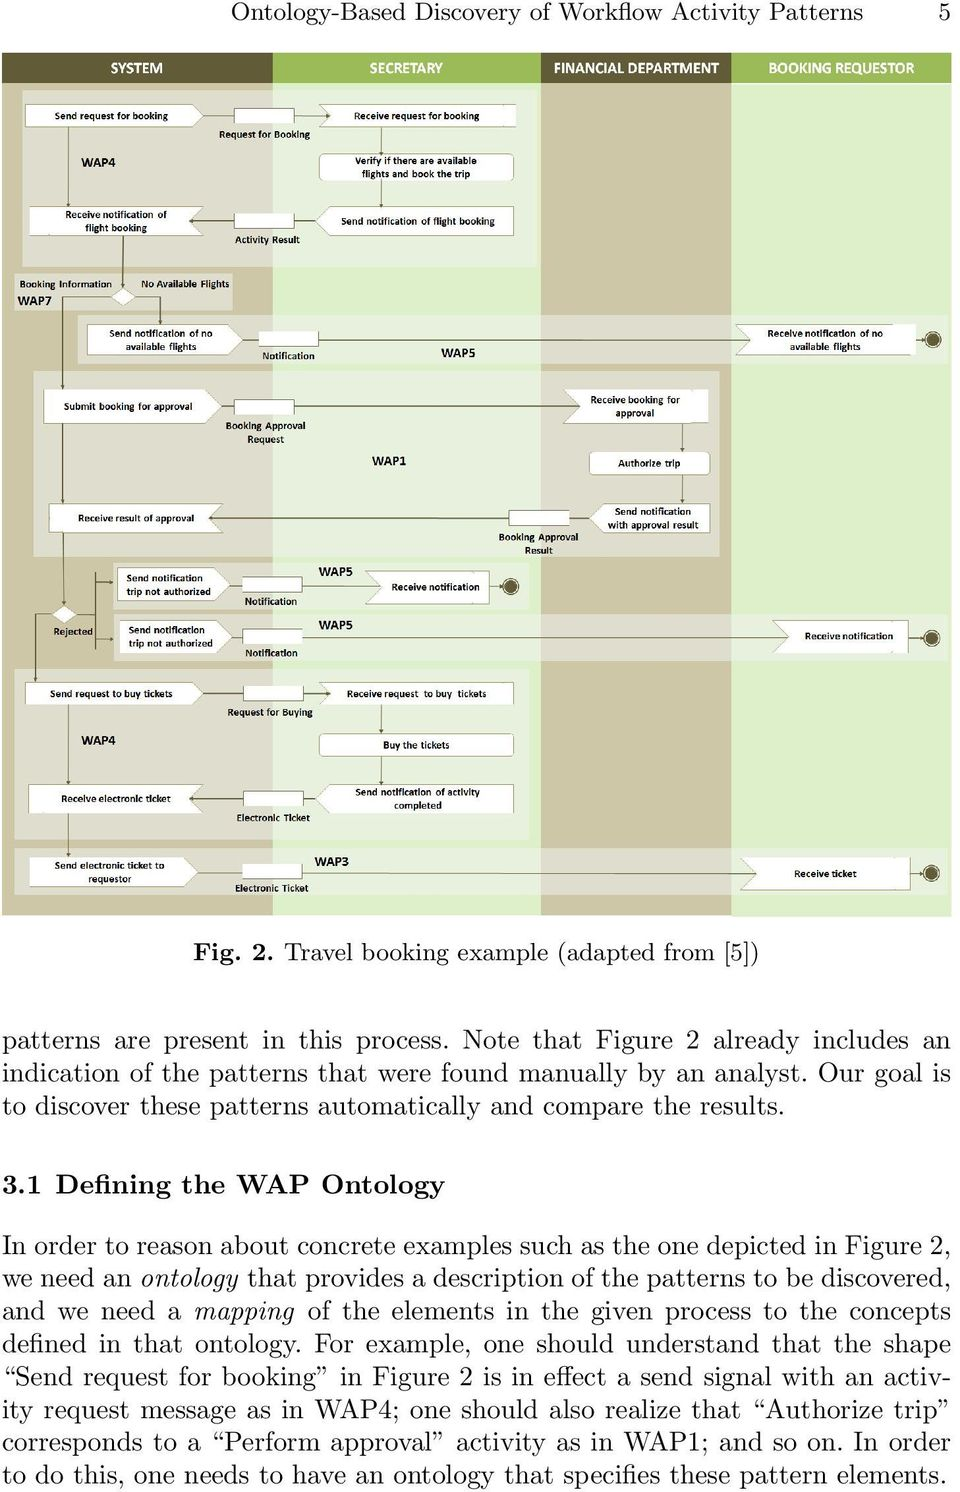 1 Defining the WAP Ontology In order to reason about concrete examples such as the one depicted in Figure 2, we need an ontology that provides a description of the patterns to be discovered, and we